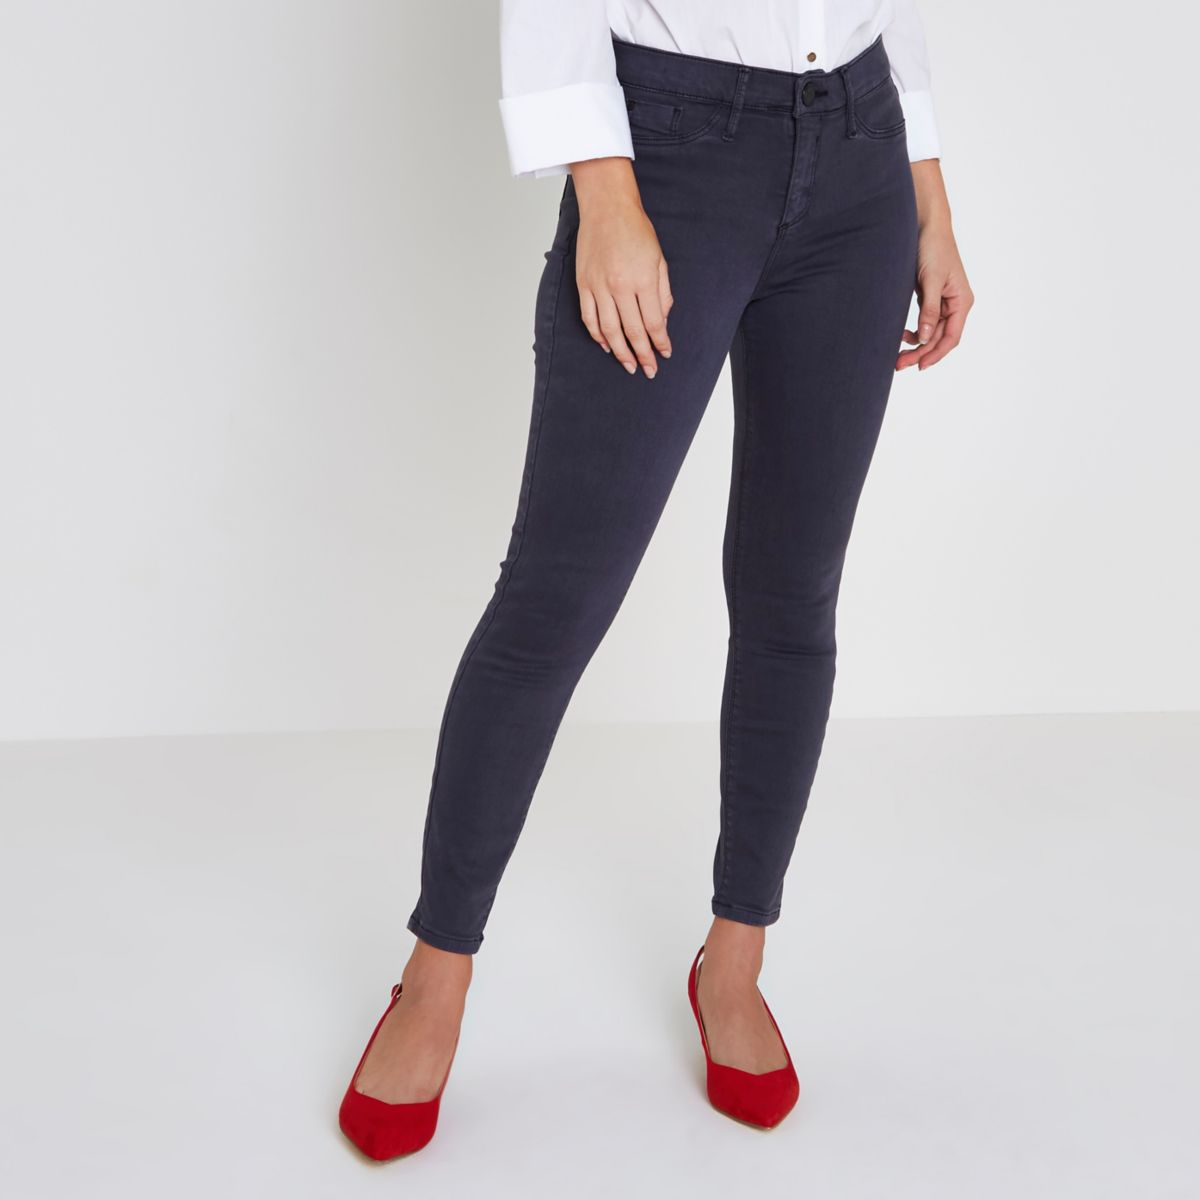 Petite grey wash skinny Molly jeggings